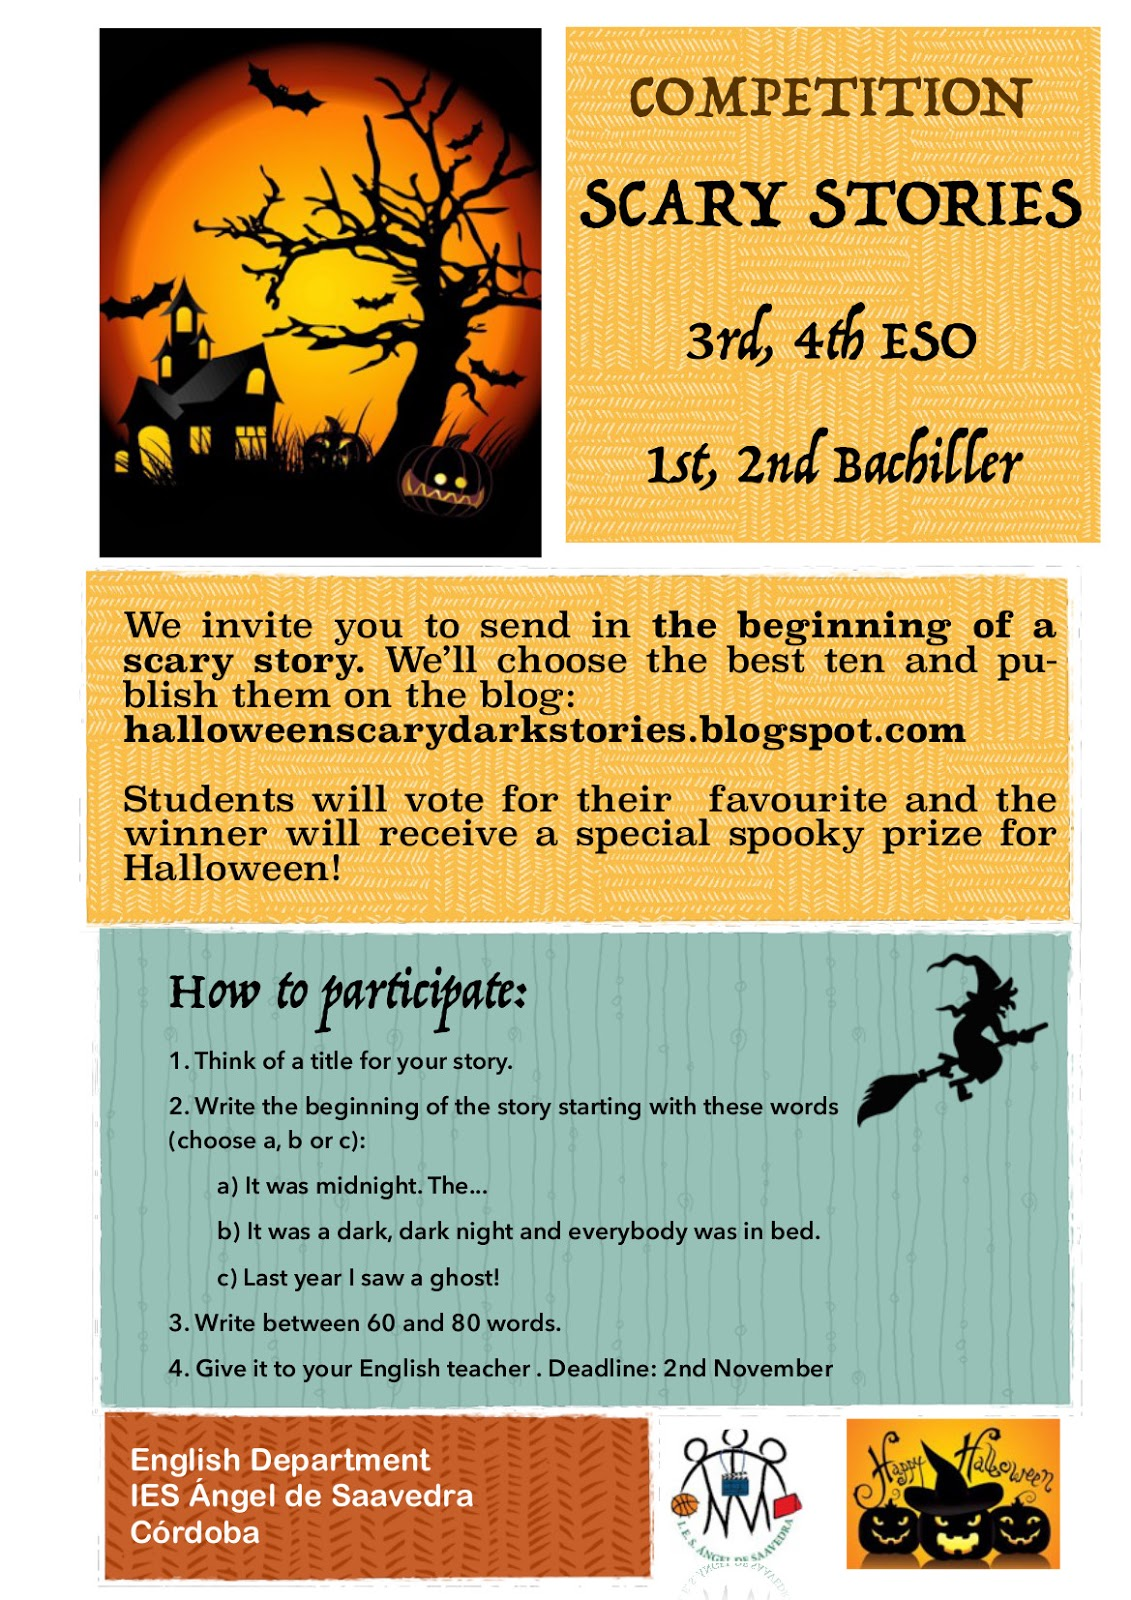 blog de pilar torres halloween activities and competition scary se propone una scary stories competition para 3ordm 4ordm eso y bachillerato y una halloween costumes competition para 1 y 2ordm eso